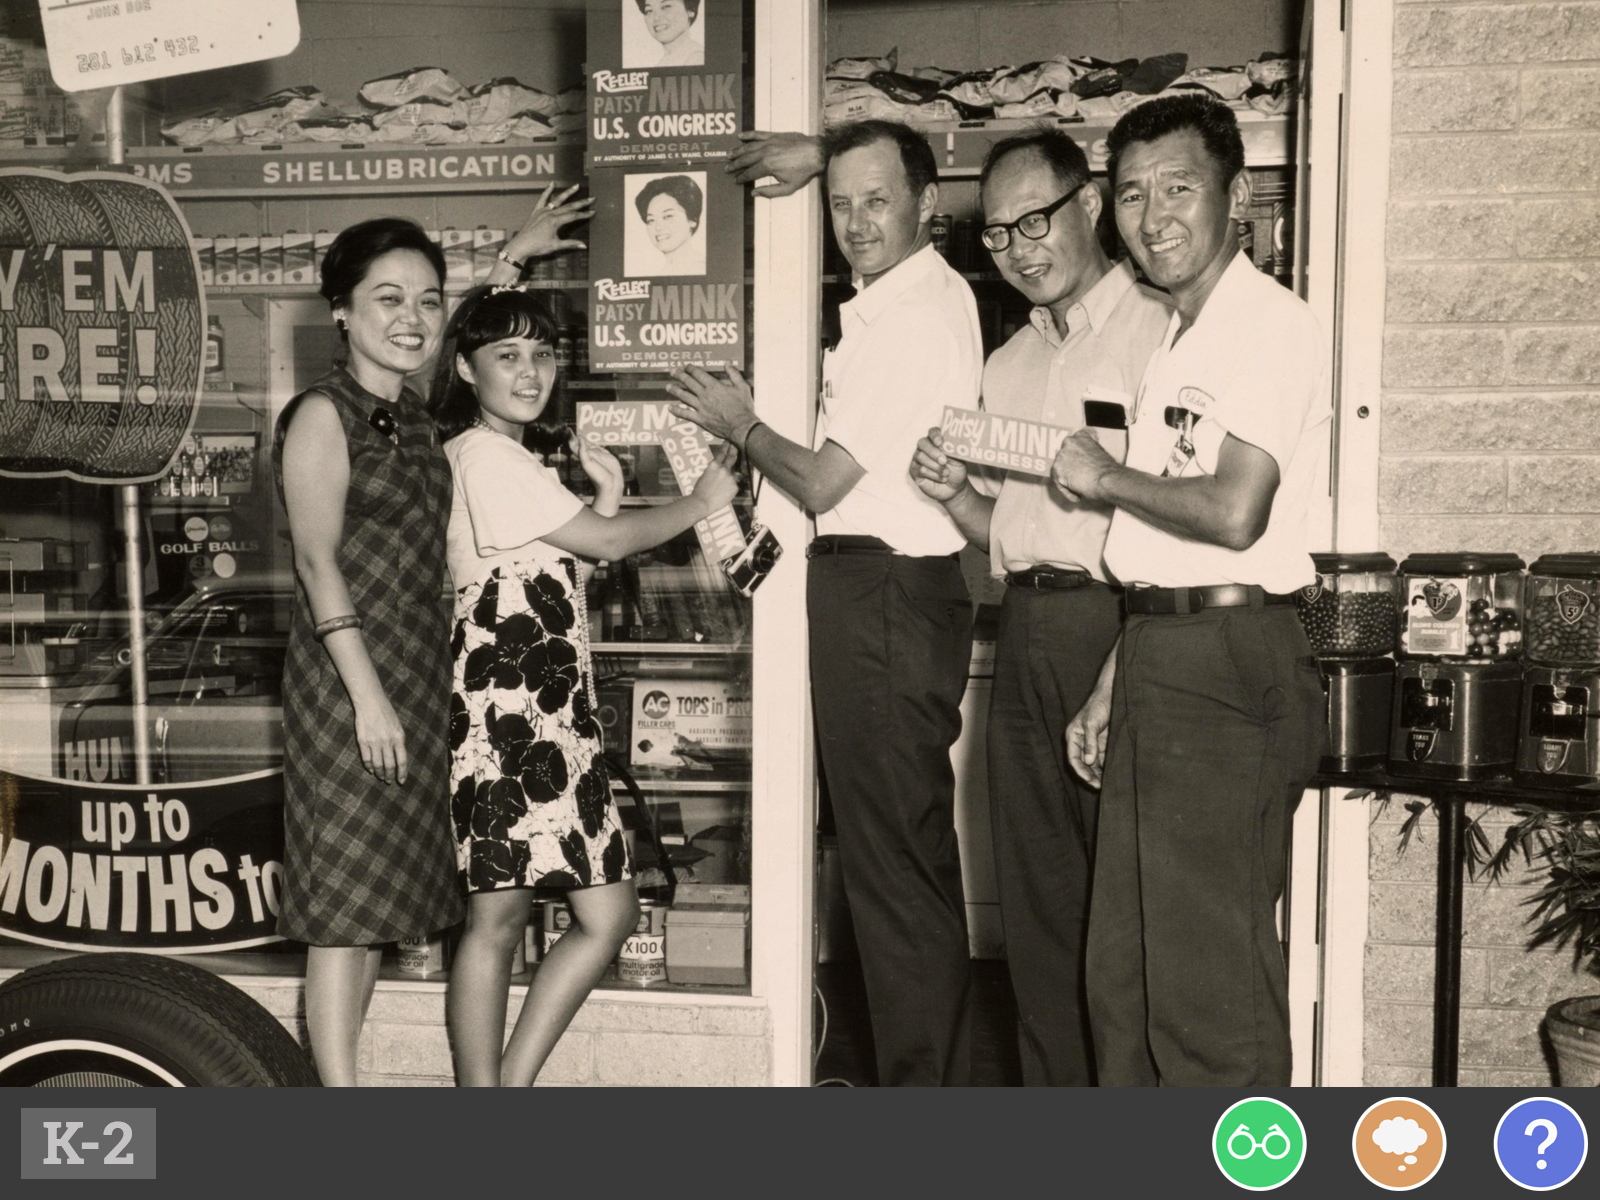 Who represents us in Congress and where do they work? - Congress is made up of people who represent their community. We will explore how Congresswoman Patsy Mink began in her home community of Hawaii and traveled to join a new community in Washington, DC to serve as a member of Congress.